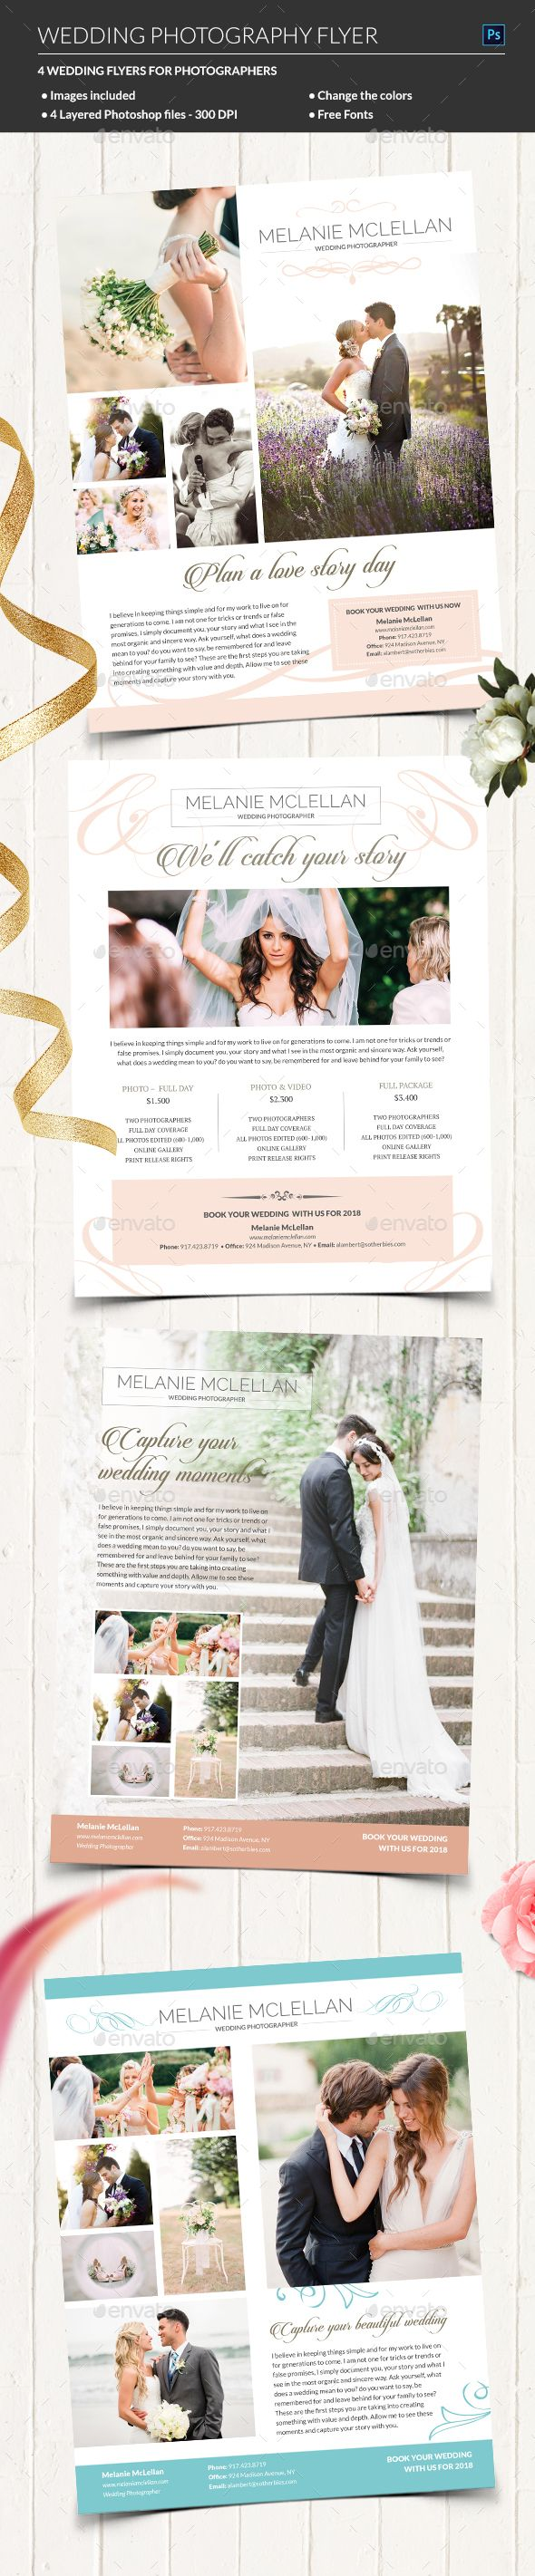 Wedding Photography Flyer  Photography Flyer Photoshop And Flyer